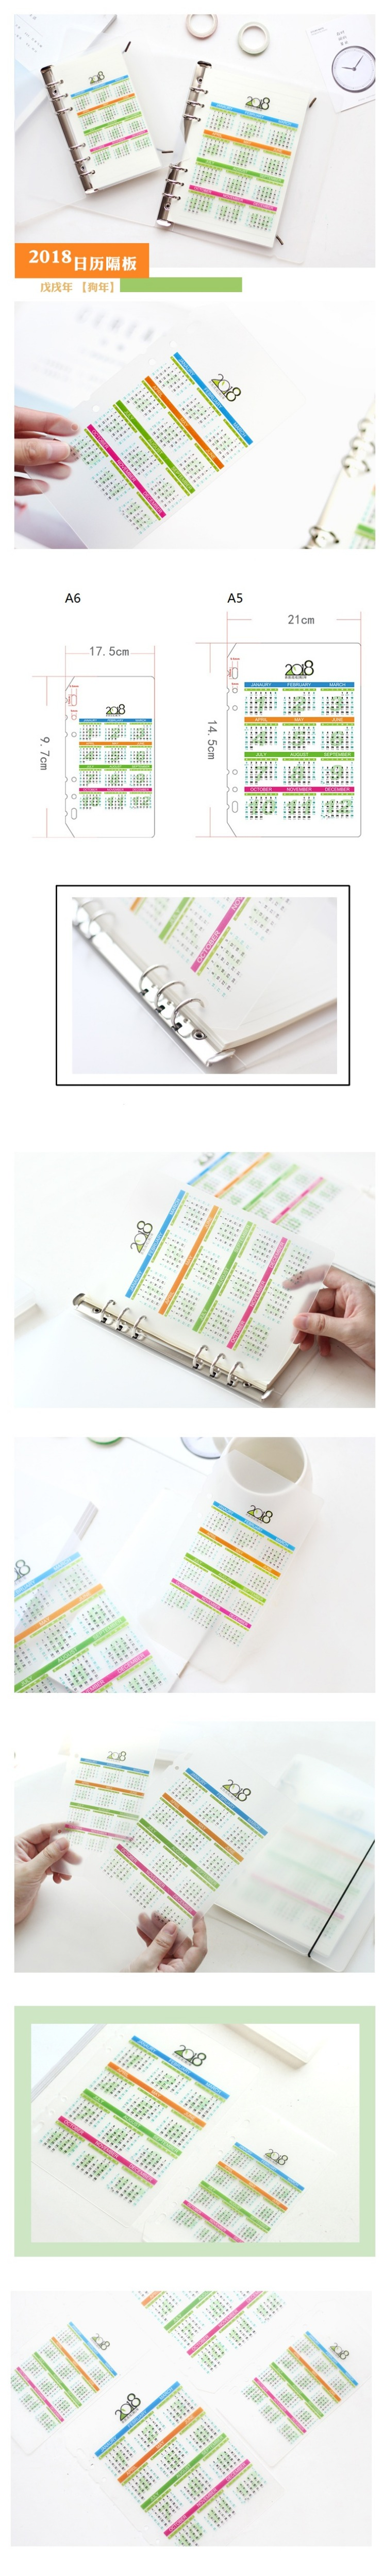 4d90d38119e5 2018 A5A6 Calendar Spacer Plate Diario Binder Planner s Separator Board  Office School Supplies Spiral Notebook s Index Page - us320